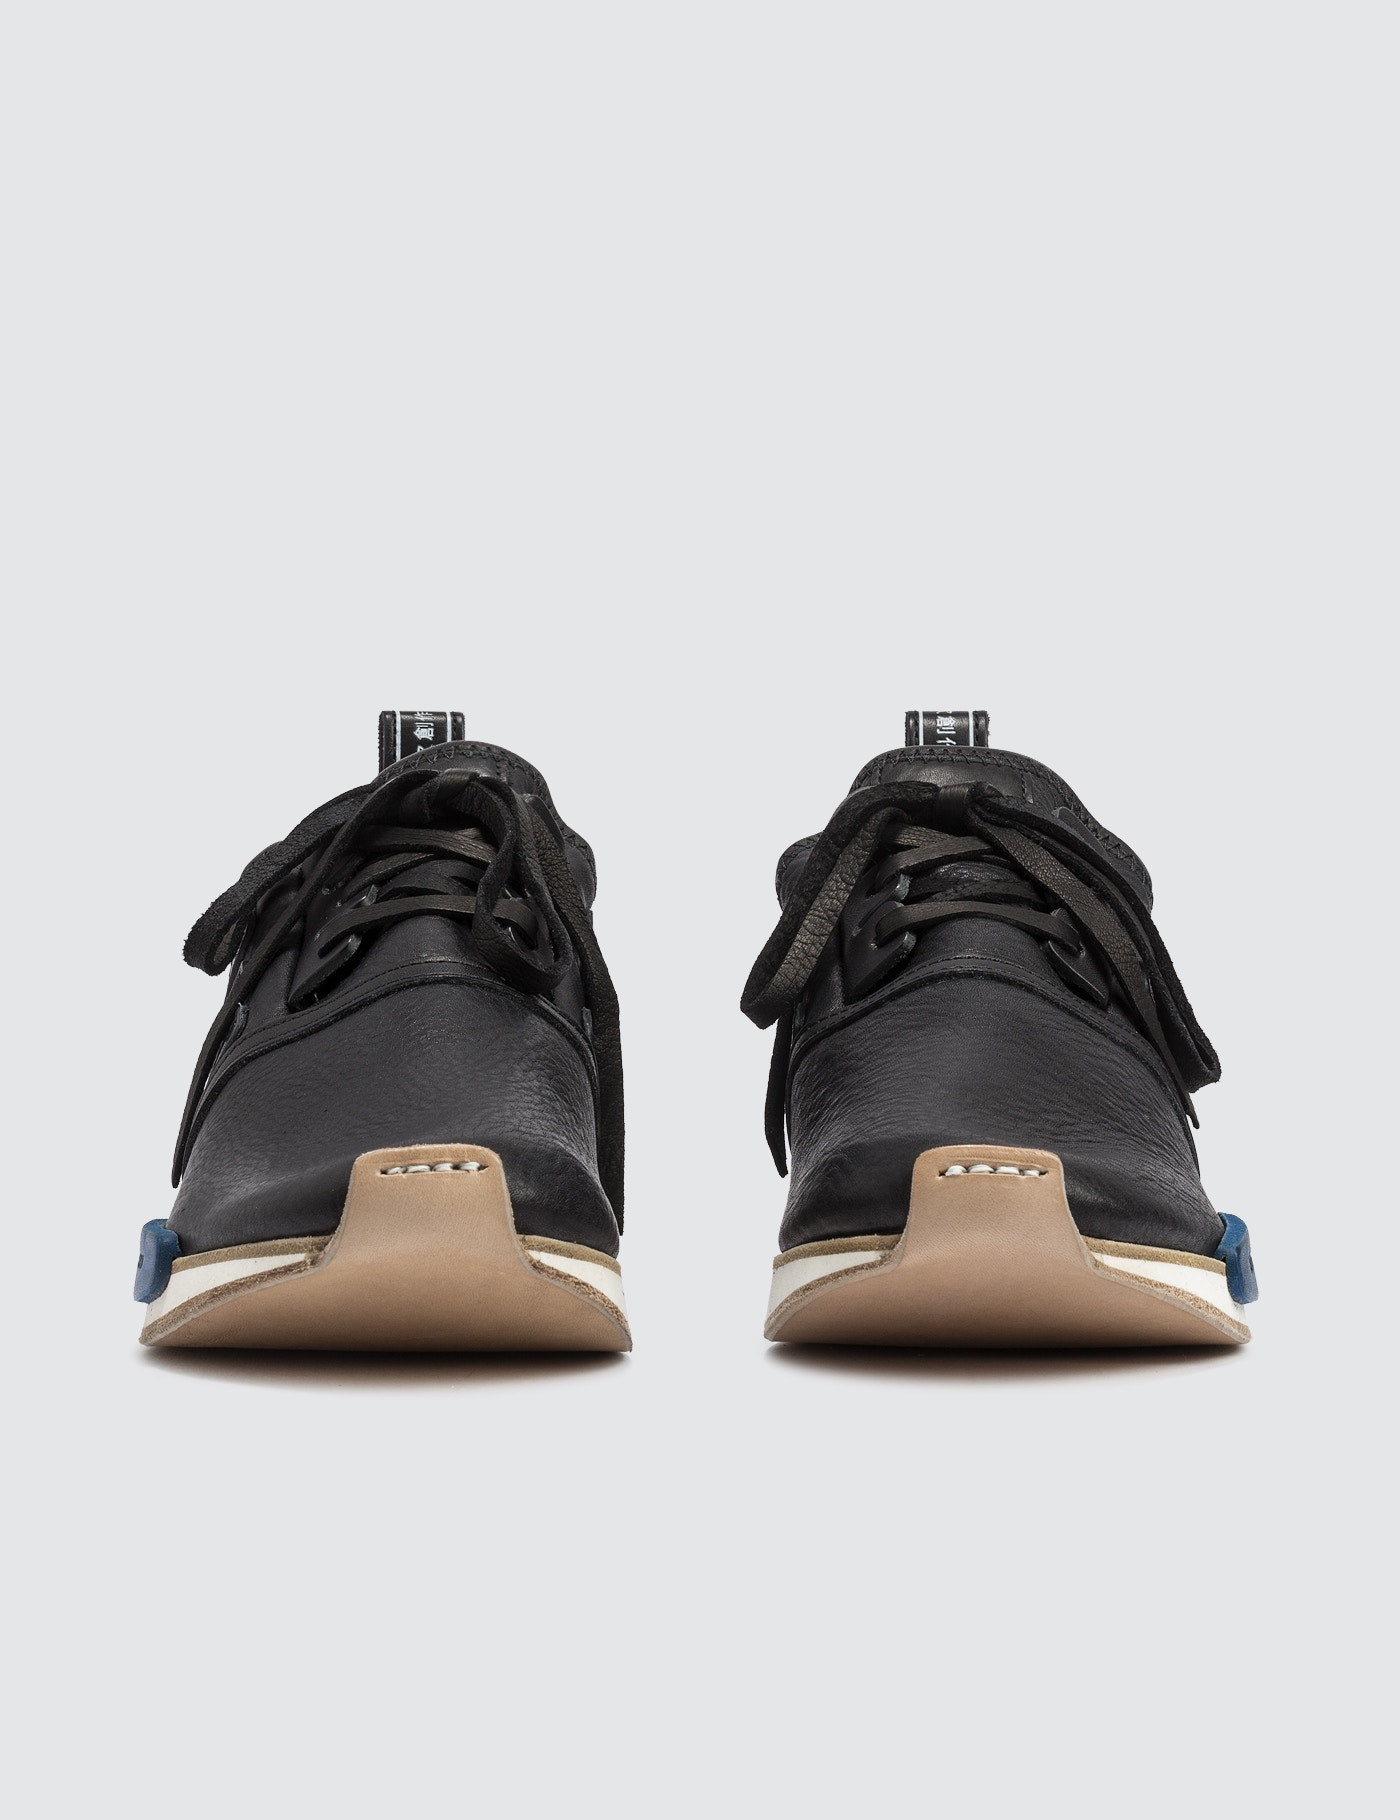 5b4f429d0 Buy Original Hender Scheme x Adidas NMD R1 at Indonesia ...